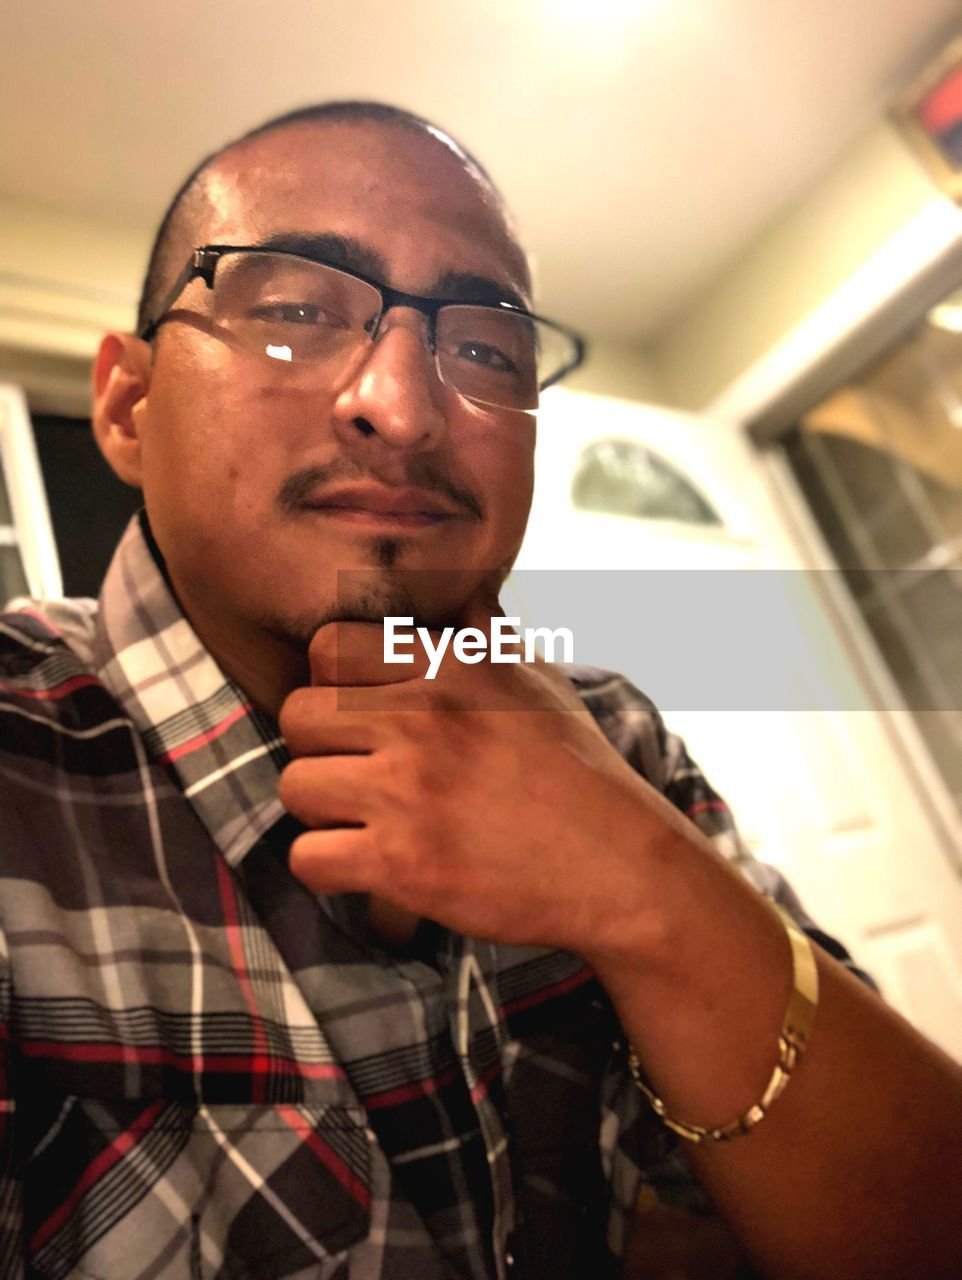 portrait, glasses, eyeglasses, real people, headshot, one person, men, indoors, males, young adult, front view, lifestyles, low angle view, casual clothing, young men, leisure activity, looking at camera, mid adult men, mid adult, mature men, human face, contemplation